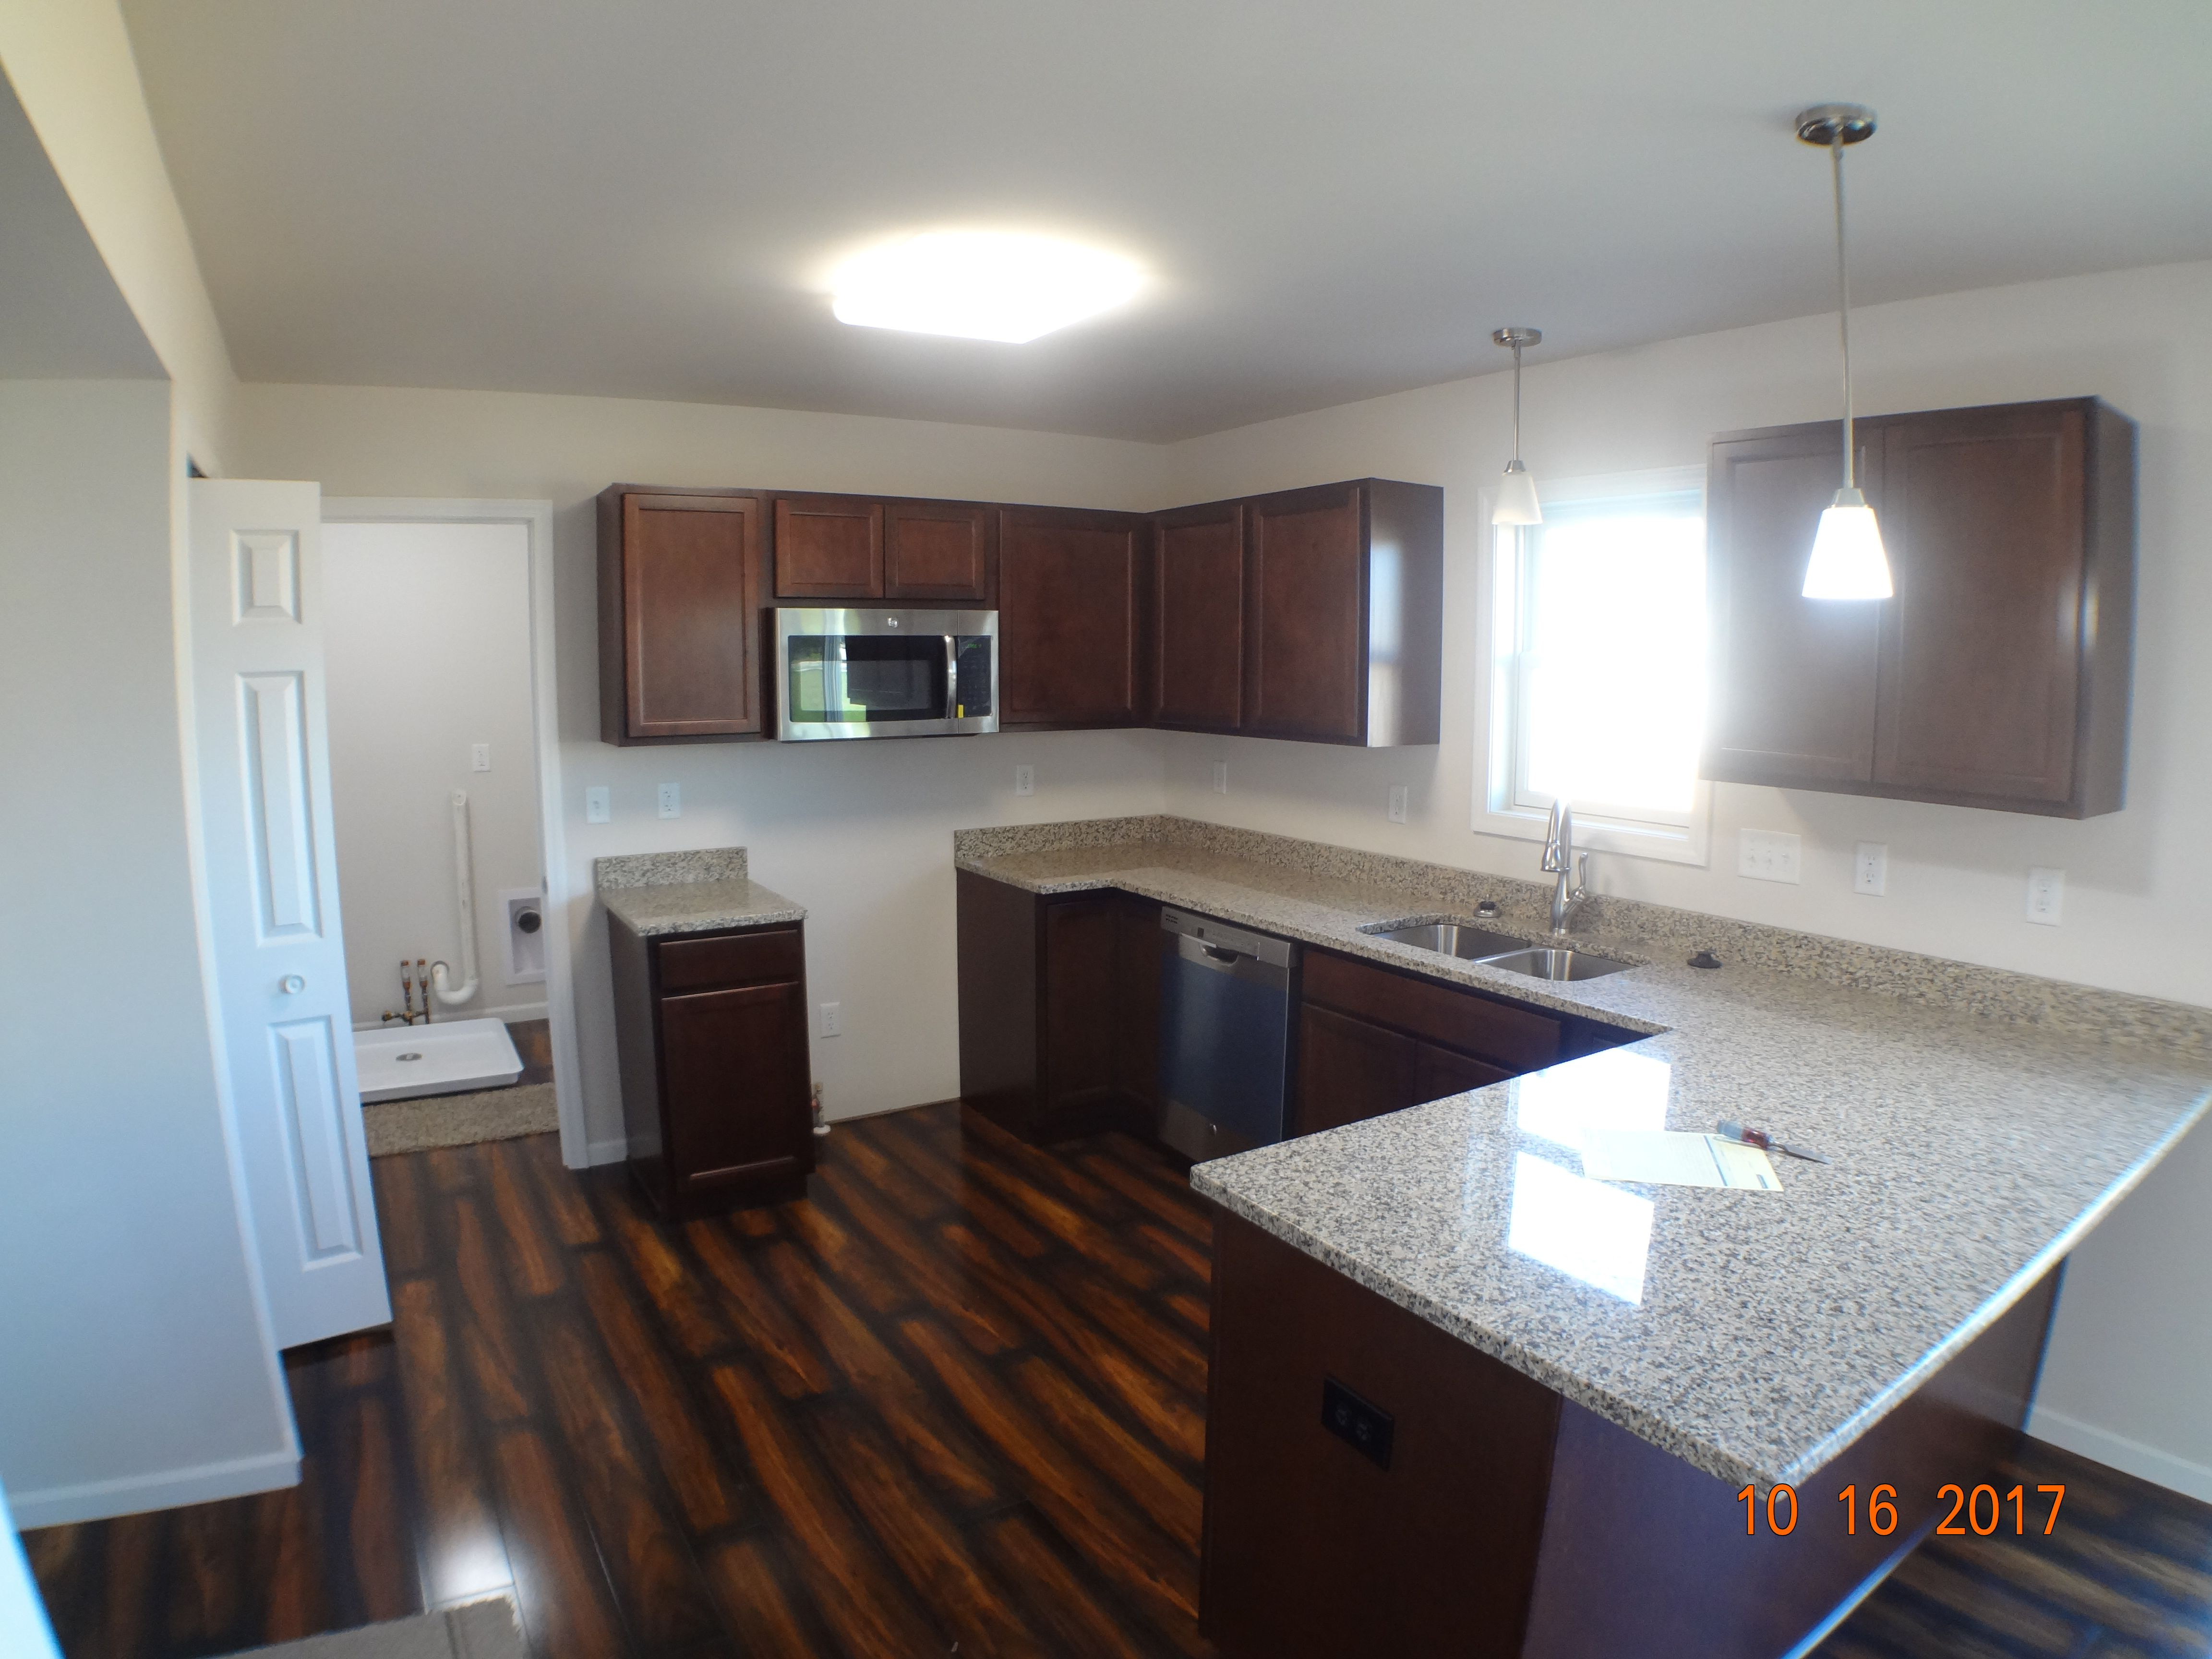 Kitchen featured in the Sophia B By Accent Homes Inc. in Gary, IN